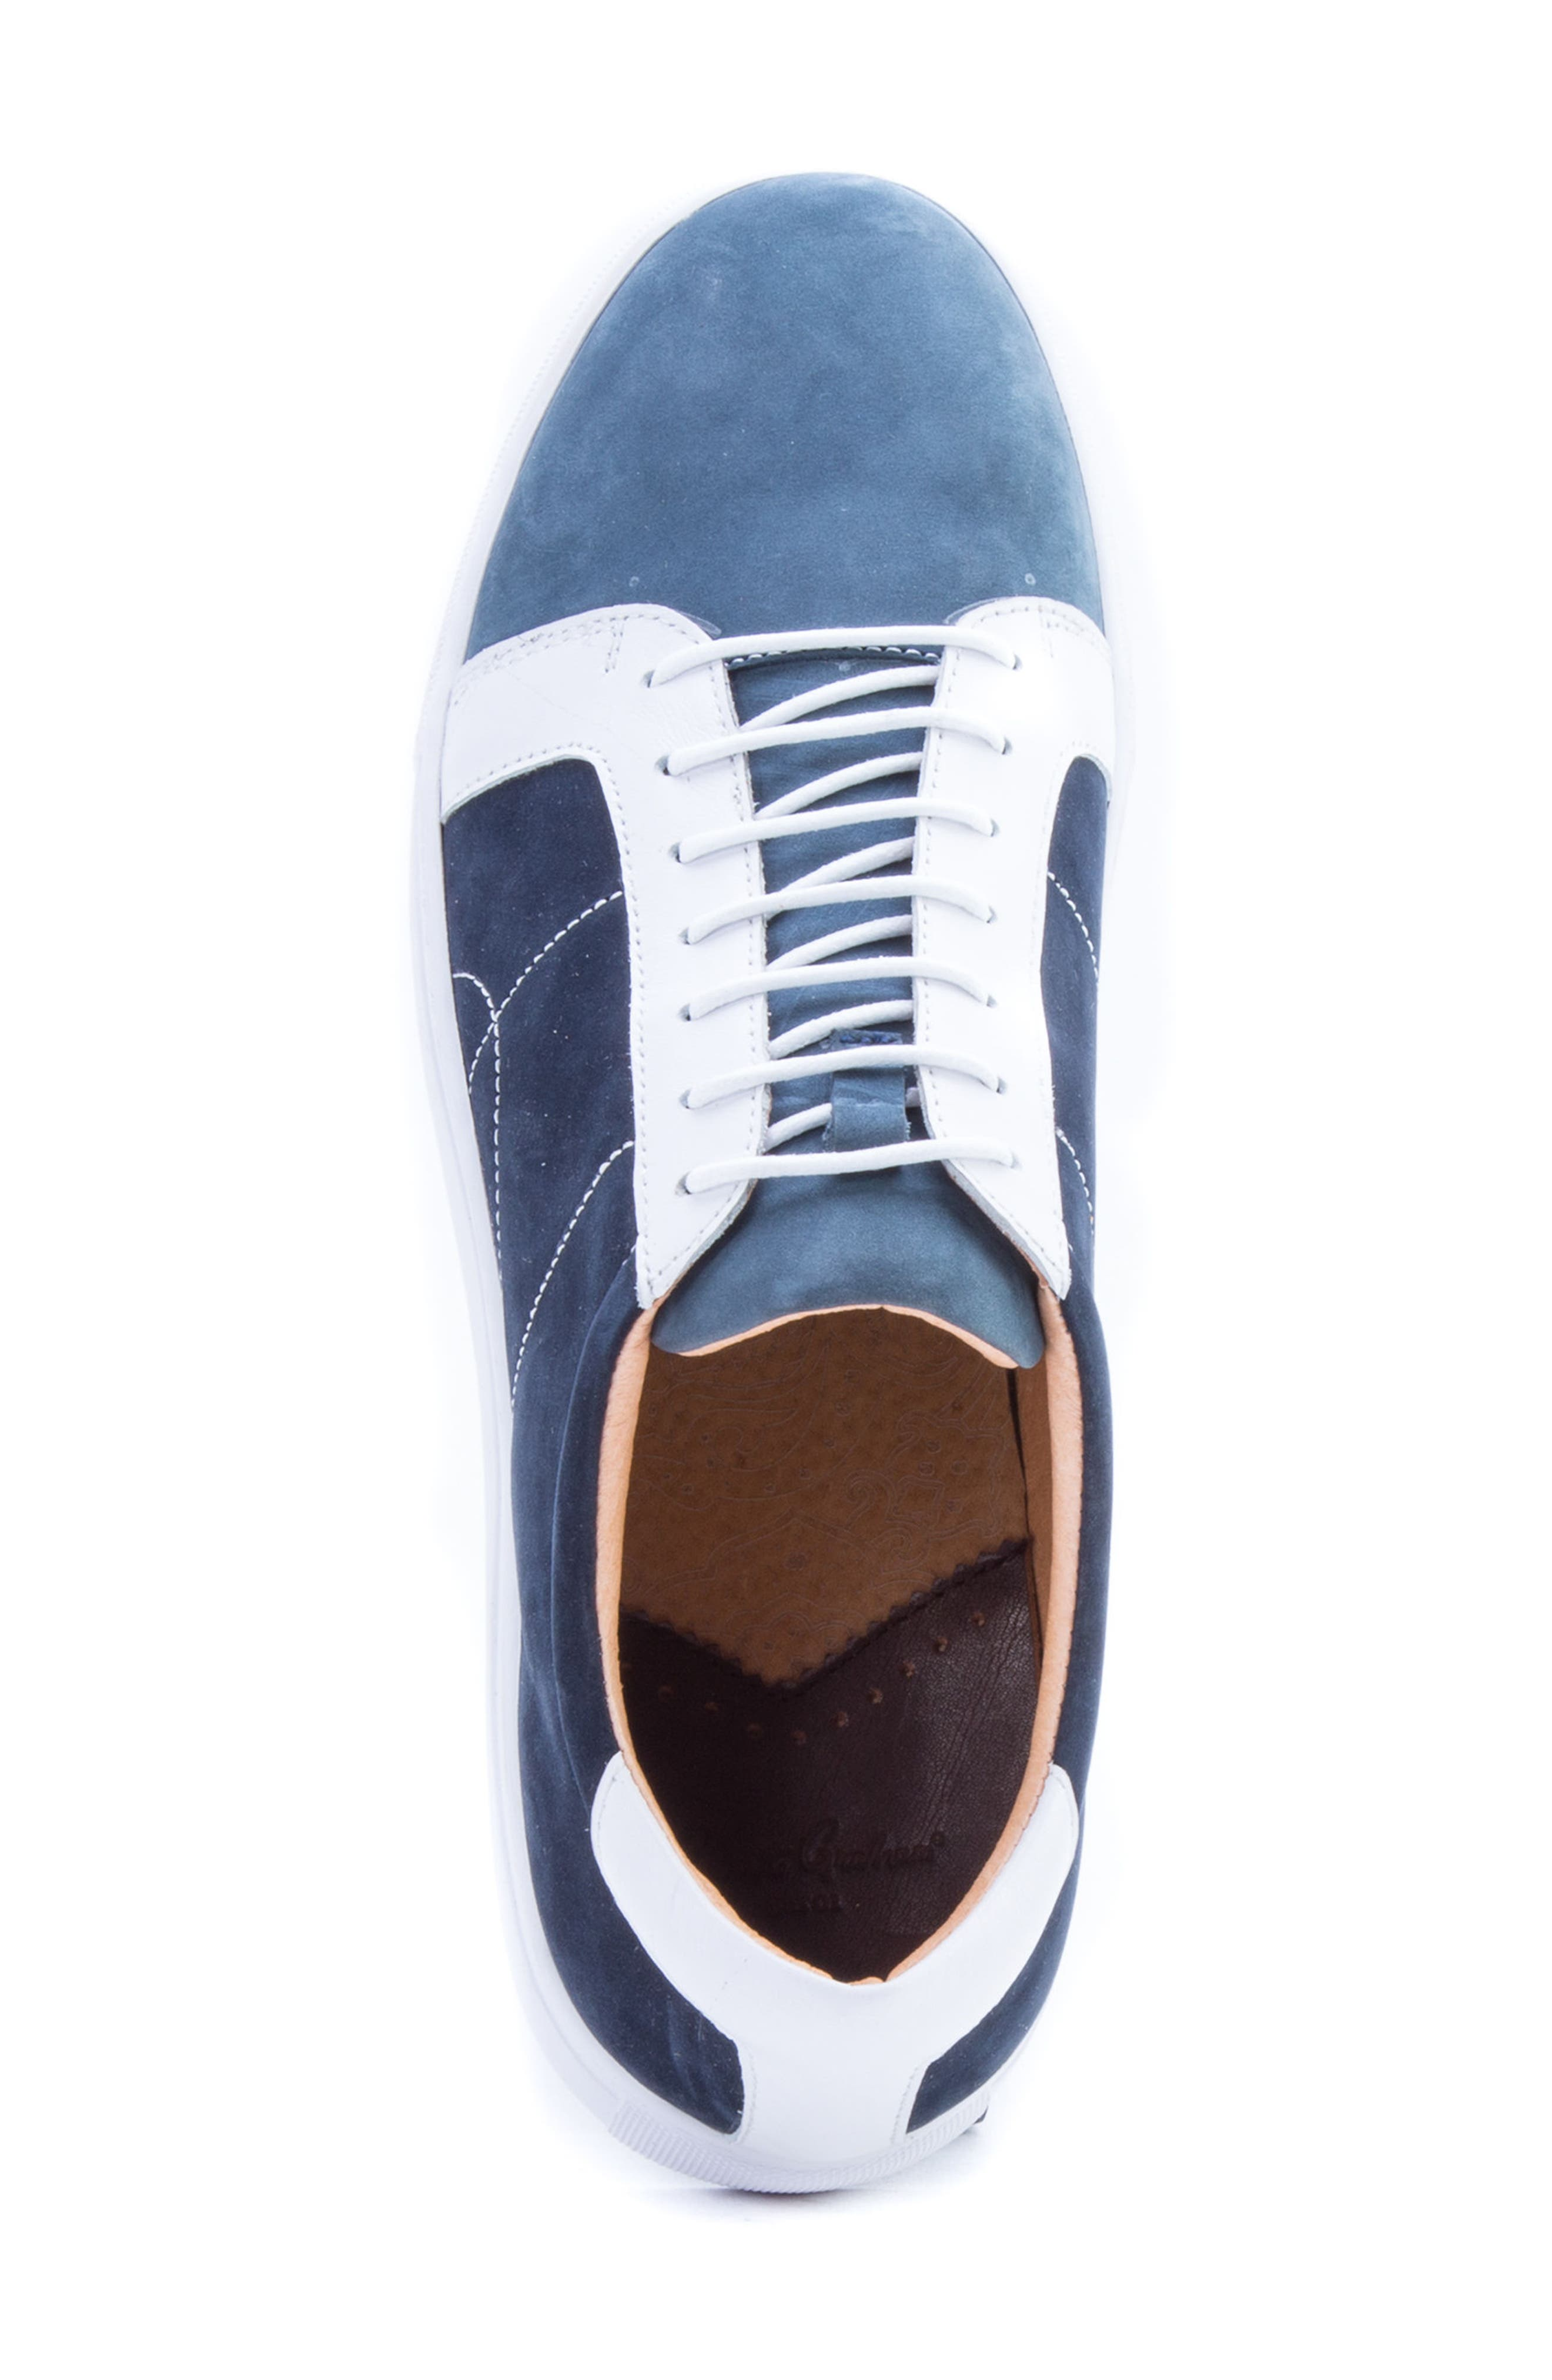 Gonzalo Low Top Sneaker,                             Alternate thumbnail 5, color,                             Navy Suede